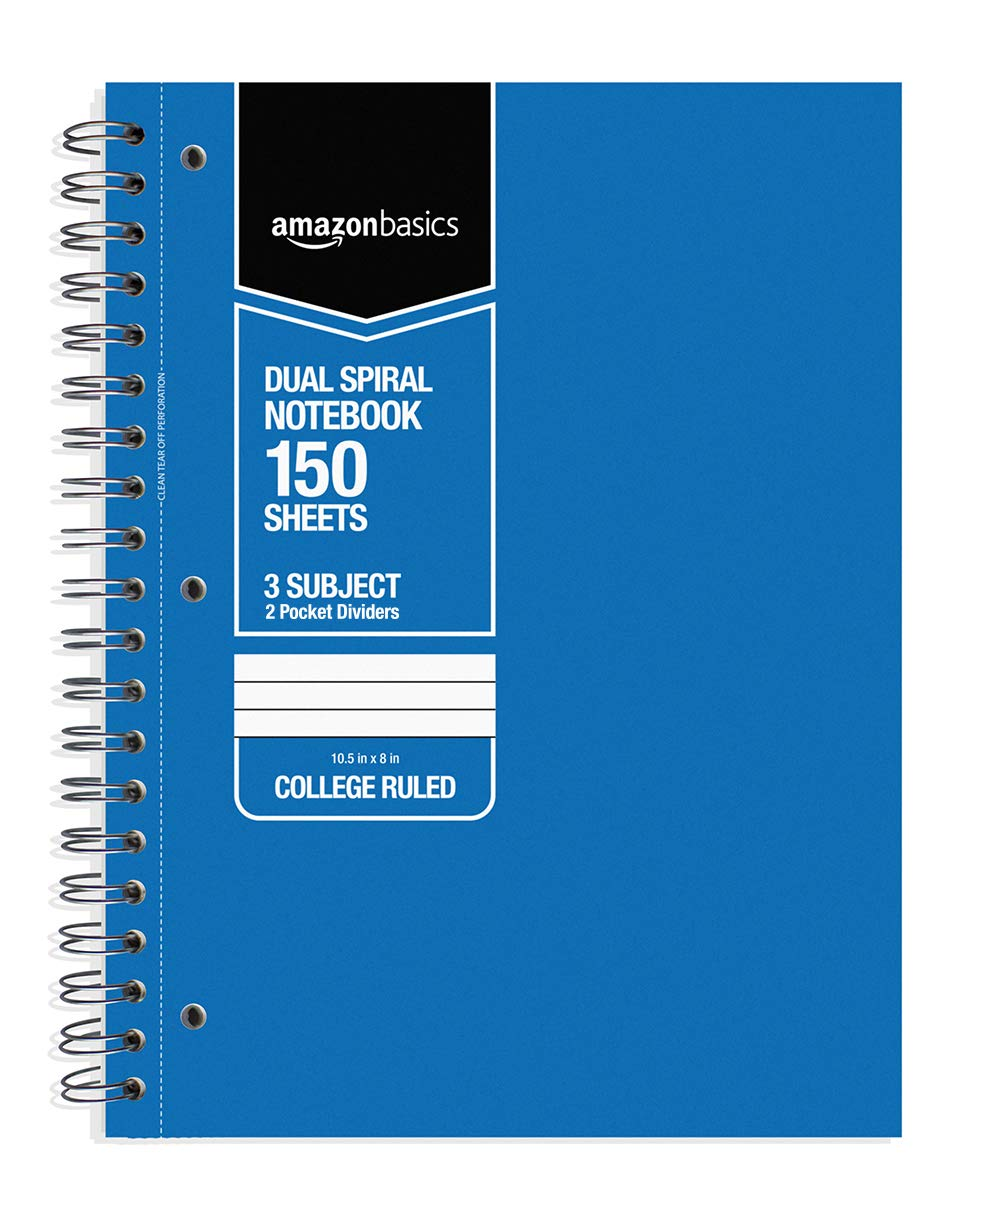 AmazonBasics College Ruled Wirebound 3-Subject 150-Sheet Notebook with Pocket Divider - Pack of 6, 10.5 x 8 Inch, Multi-Color